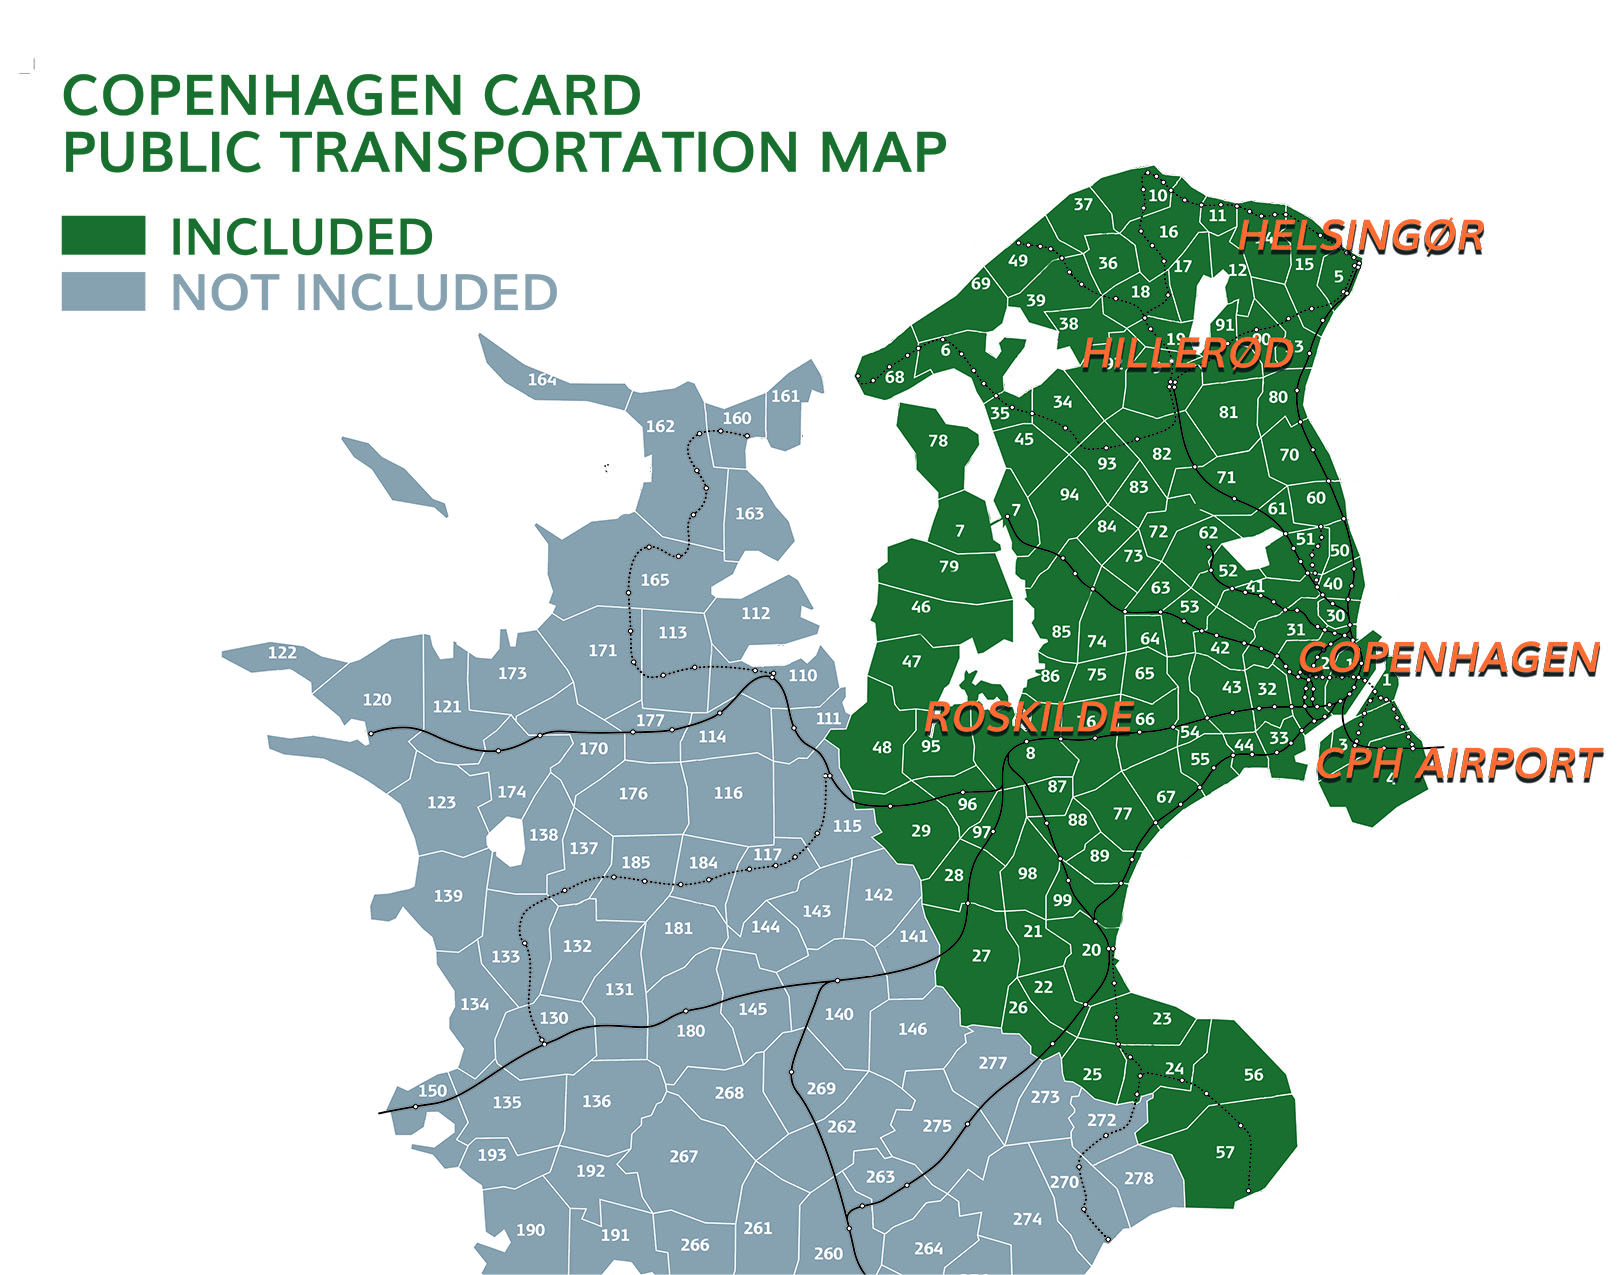 Public Transportation Copenhagen Card